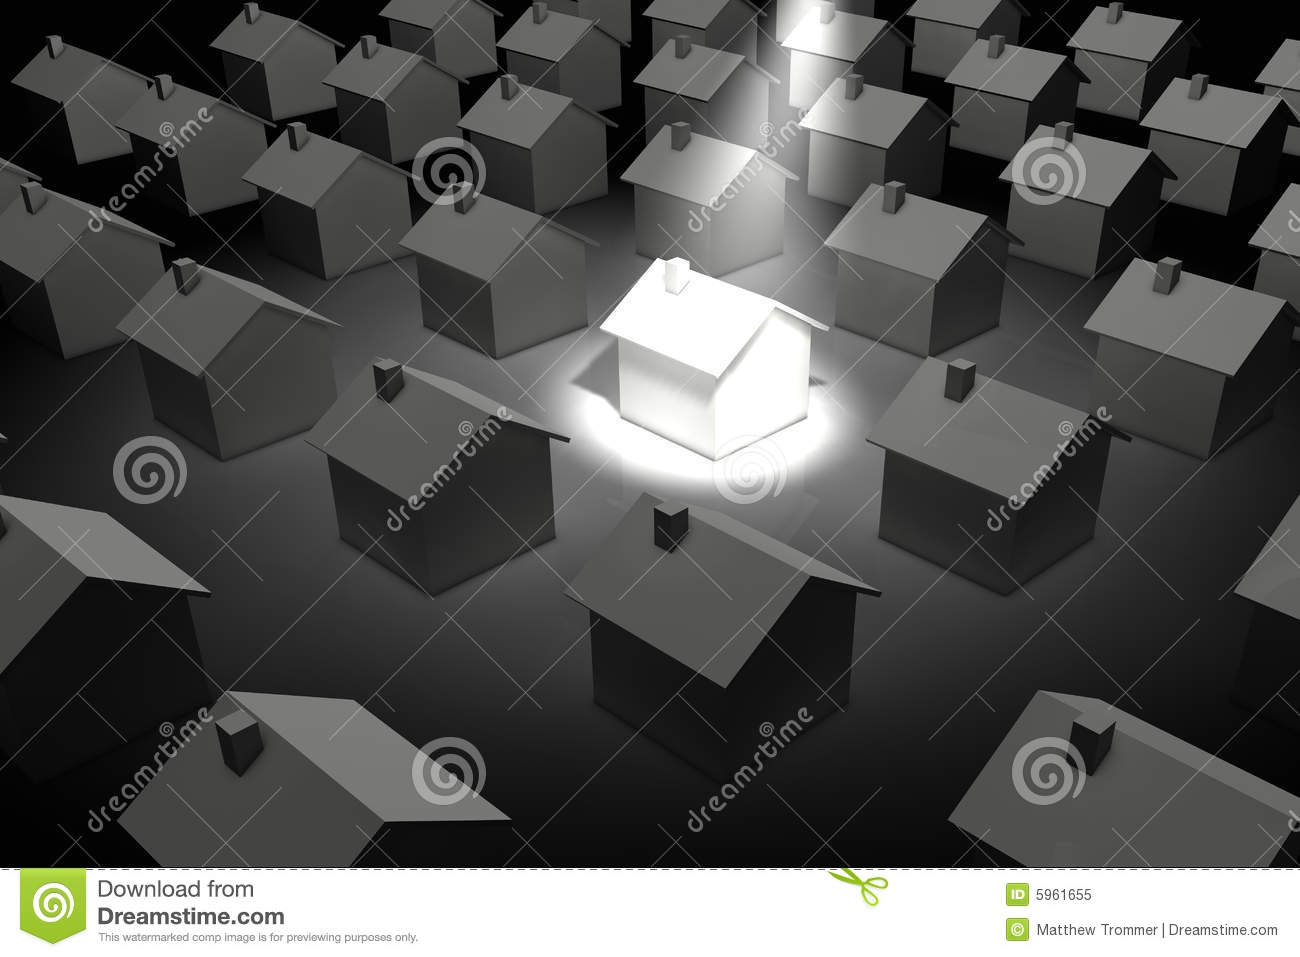 Finding the perfect house royalty free stock photo image for Find the perfect house